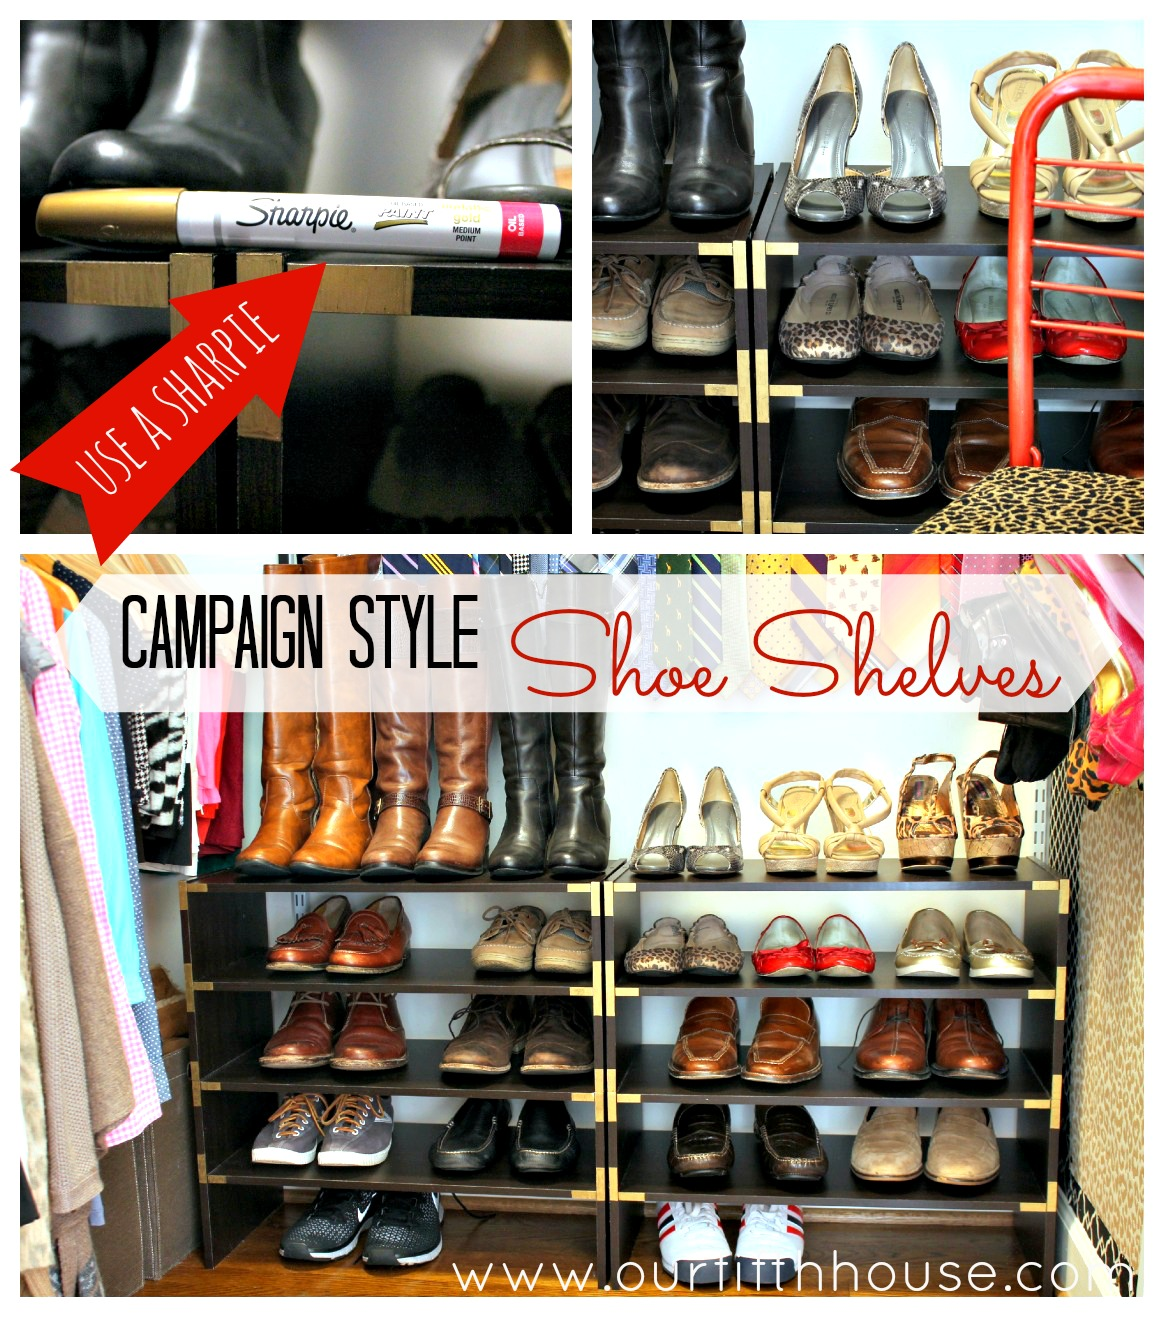 diy shoe rack campaign style shoe shelves our fifth house